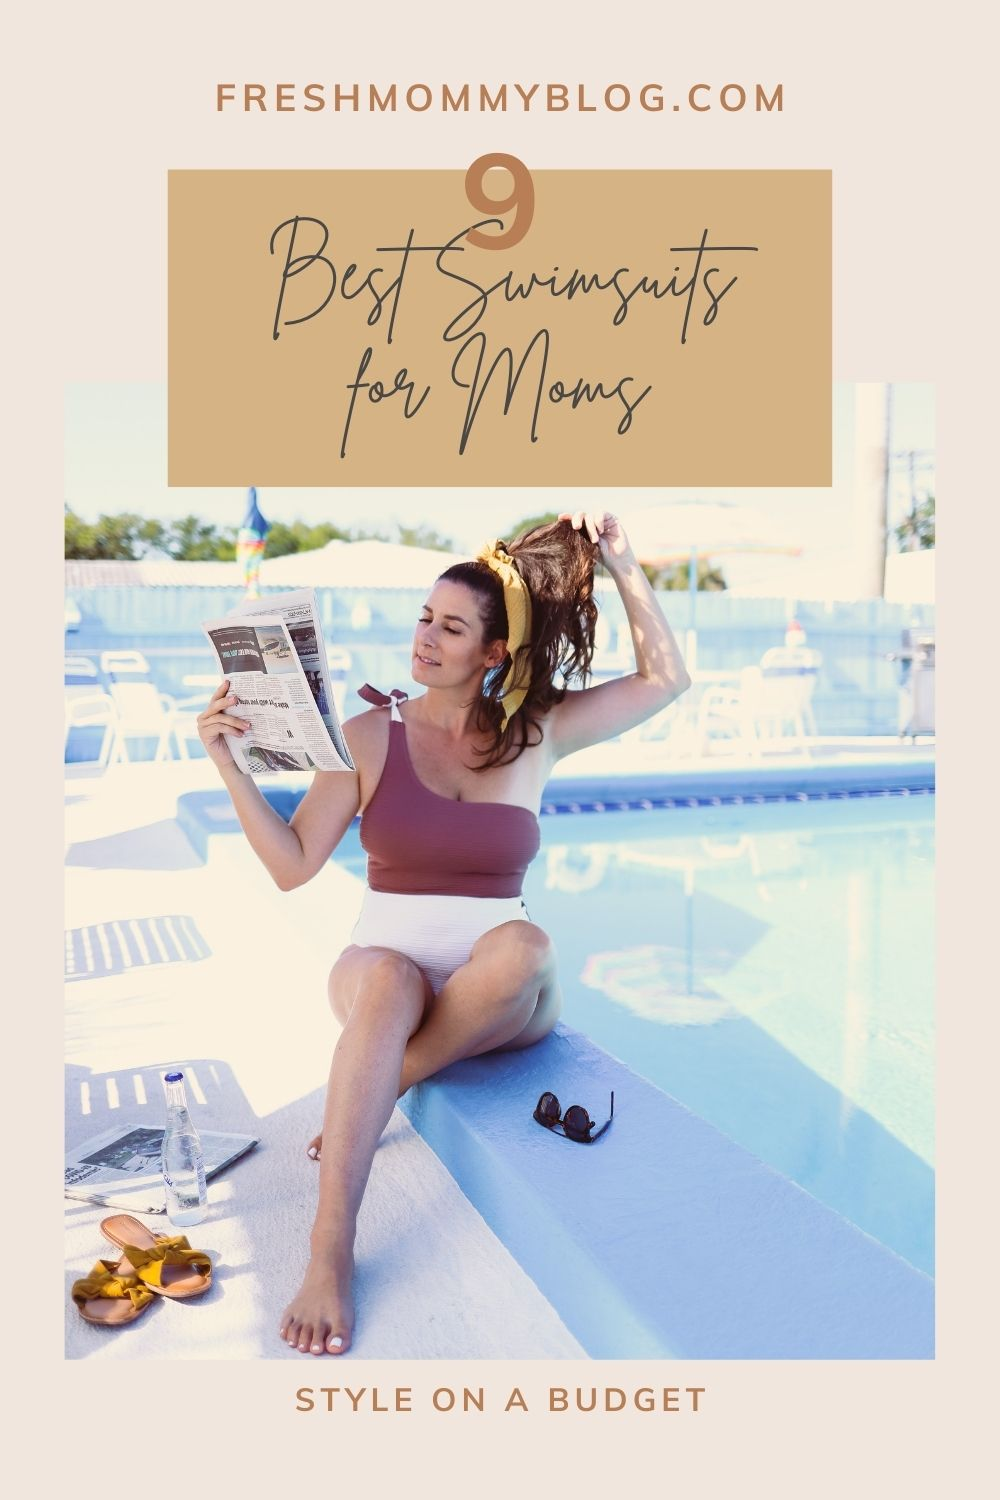 Swimsuits for Moms by popular Florida fashion blog, Fresh Mommy Blog: Pinterest image of a woman sitting outside next to the Palm Court motel swimming pool and wearing a two tone one piece swimsuit.